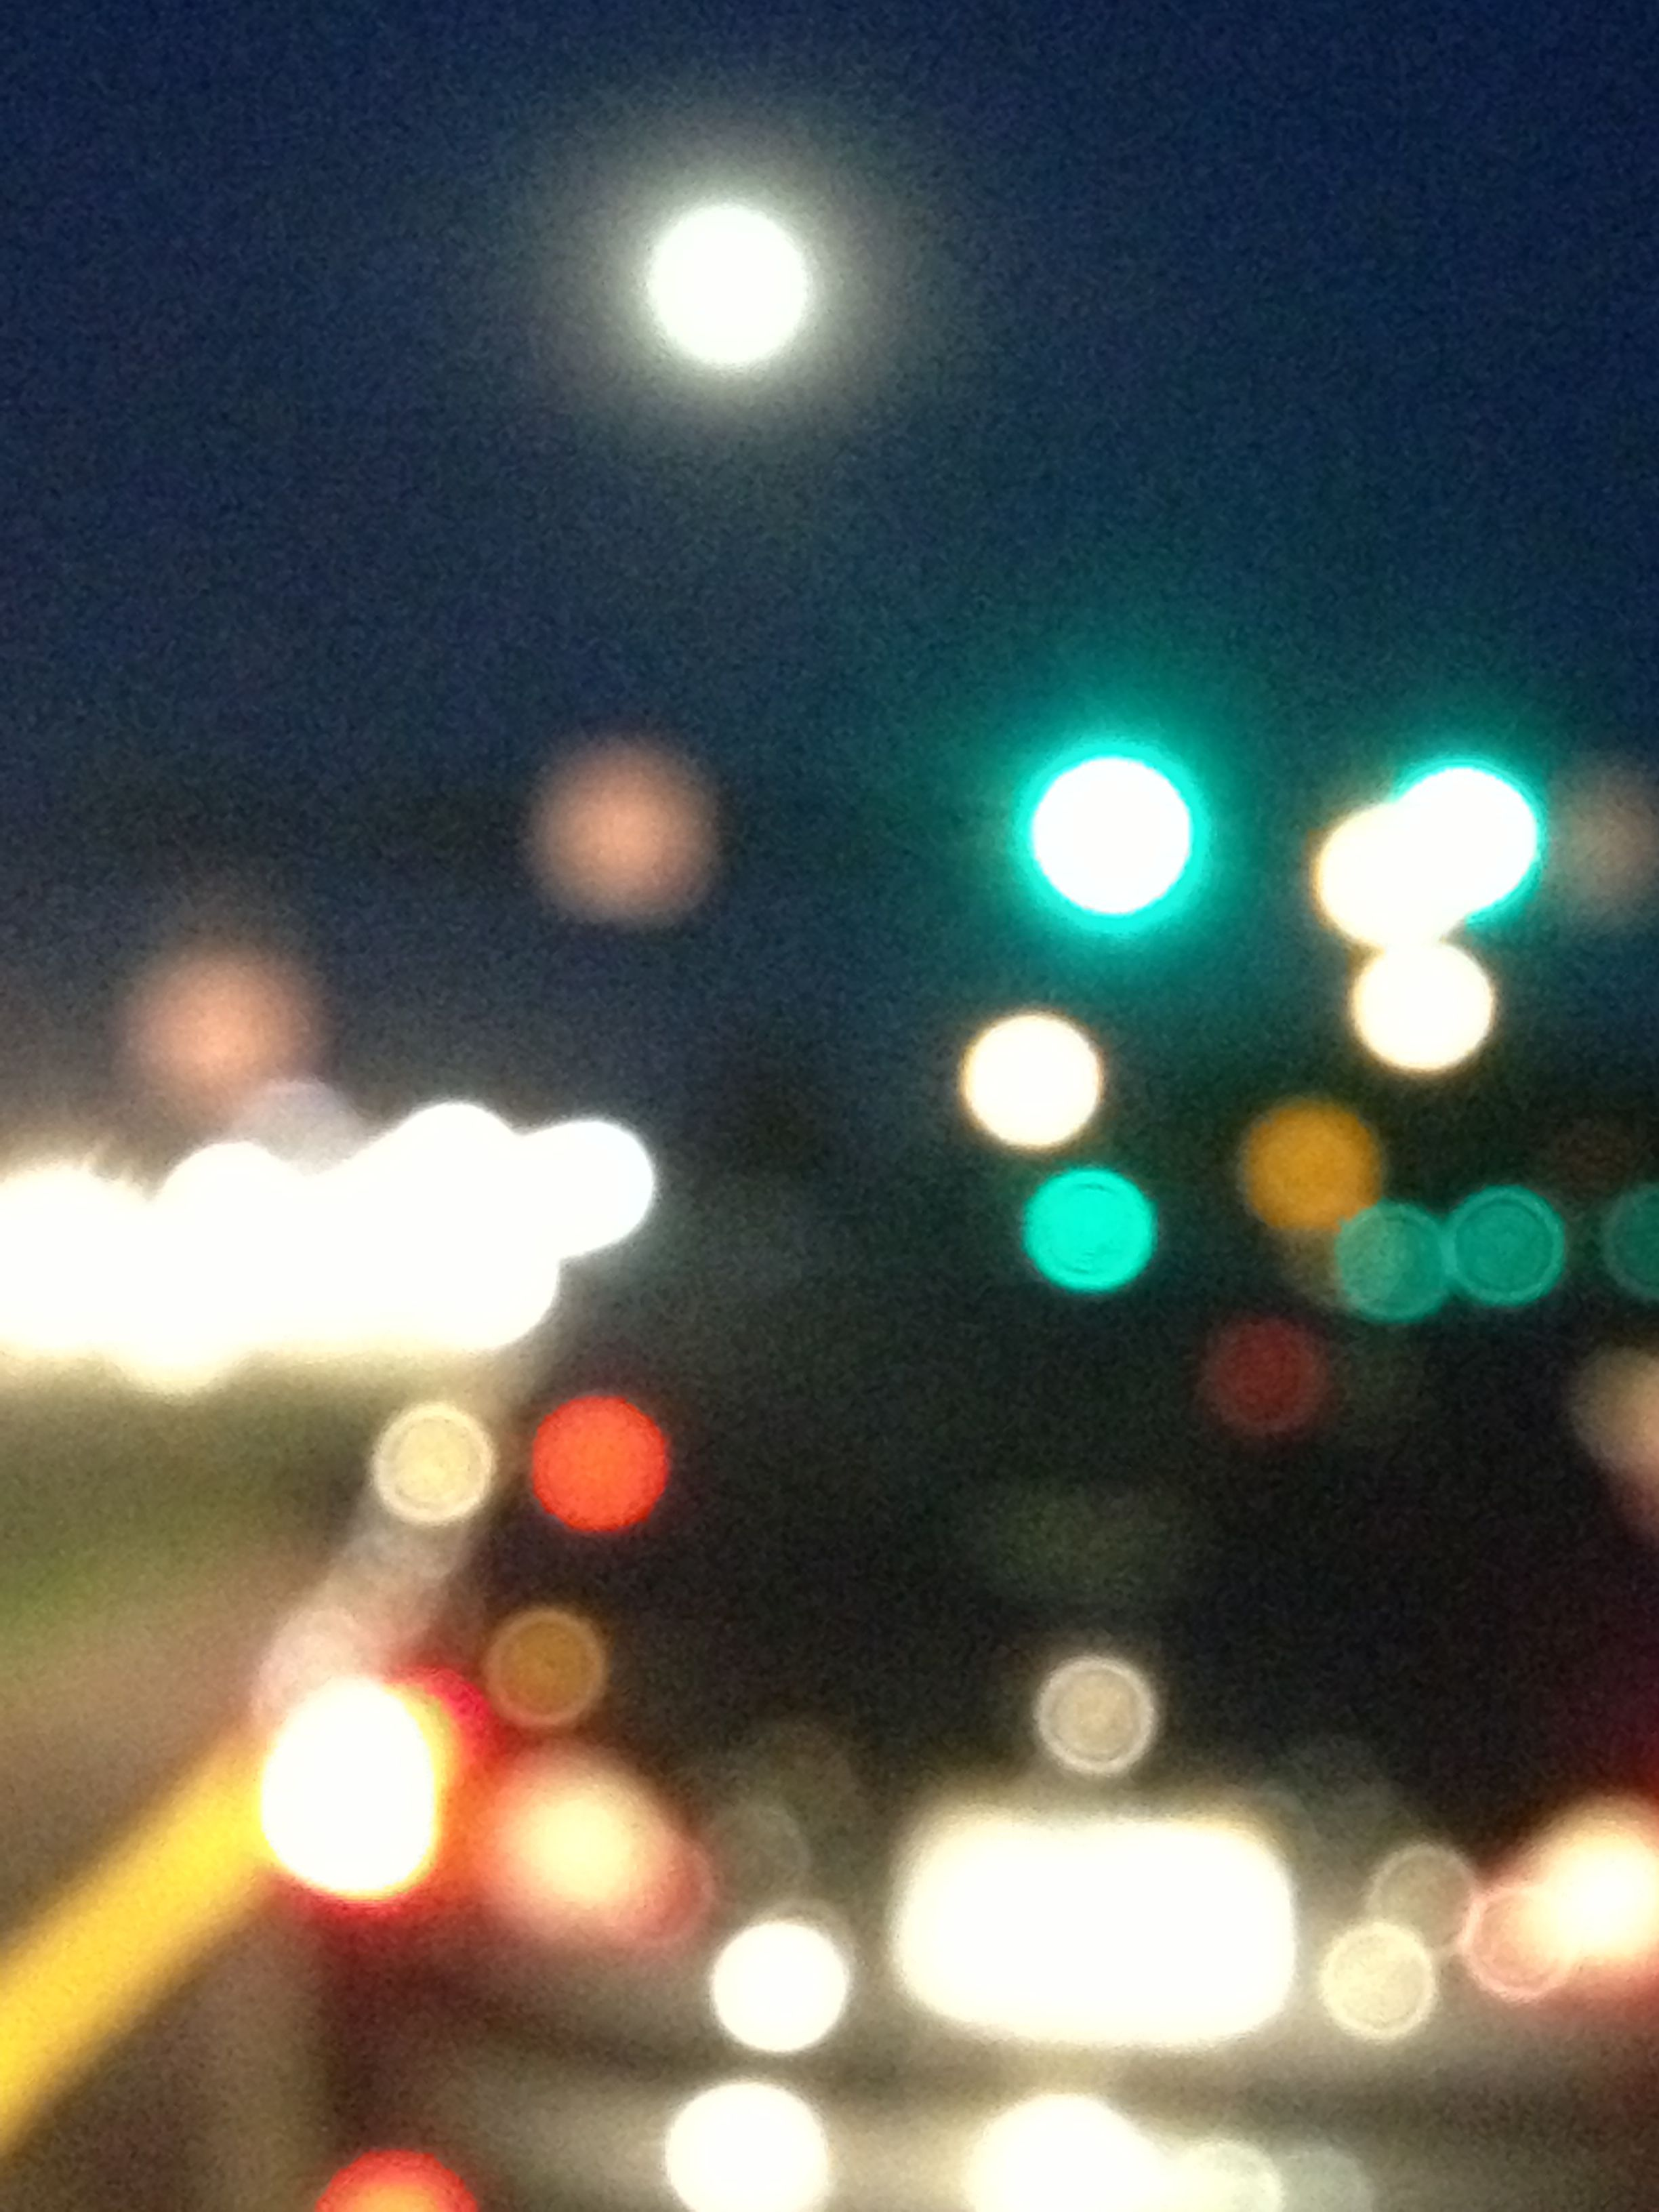 Blurry vision and bright lights | Acoustic Neuroma | Pinterest